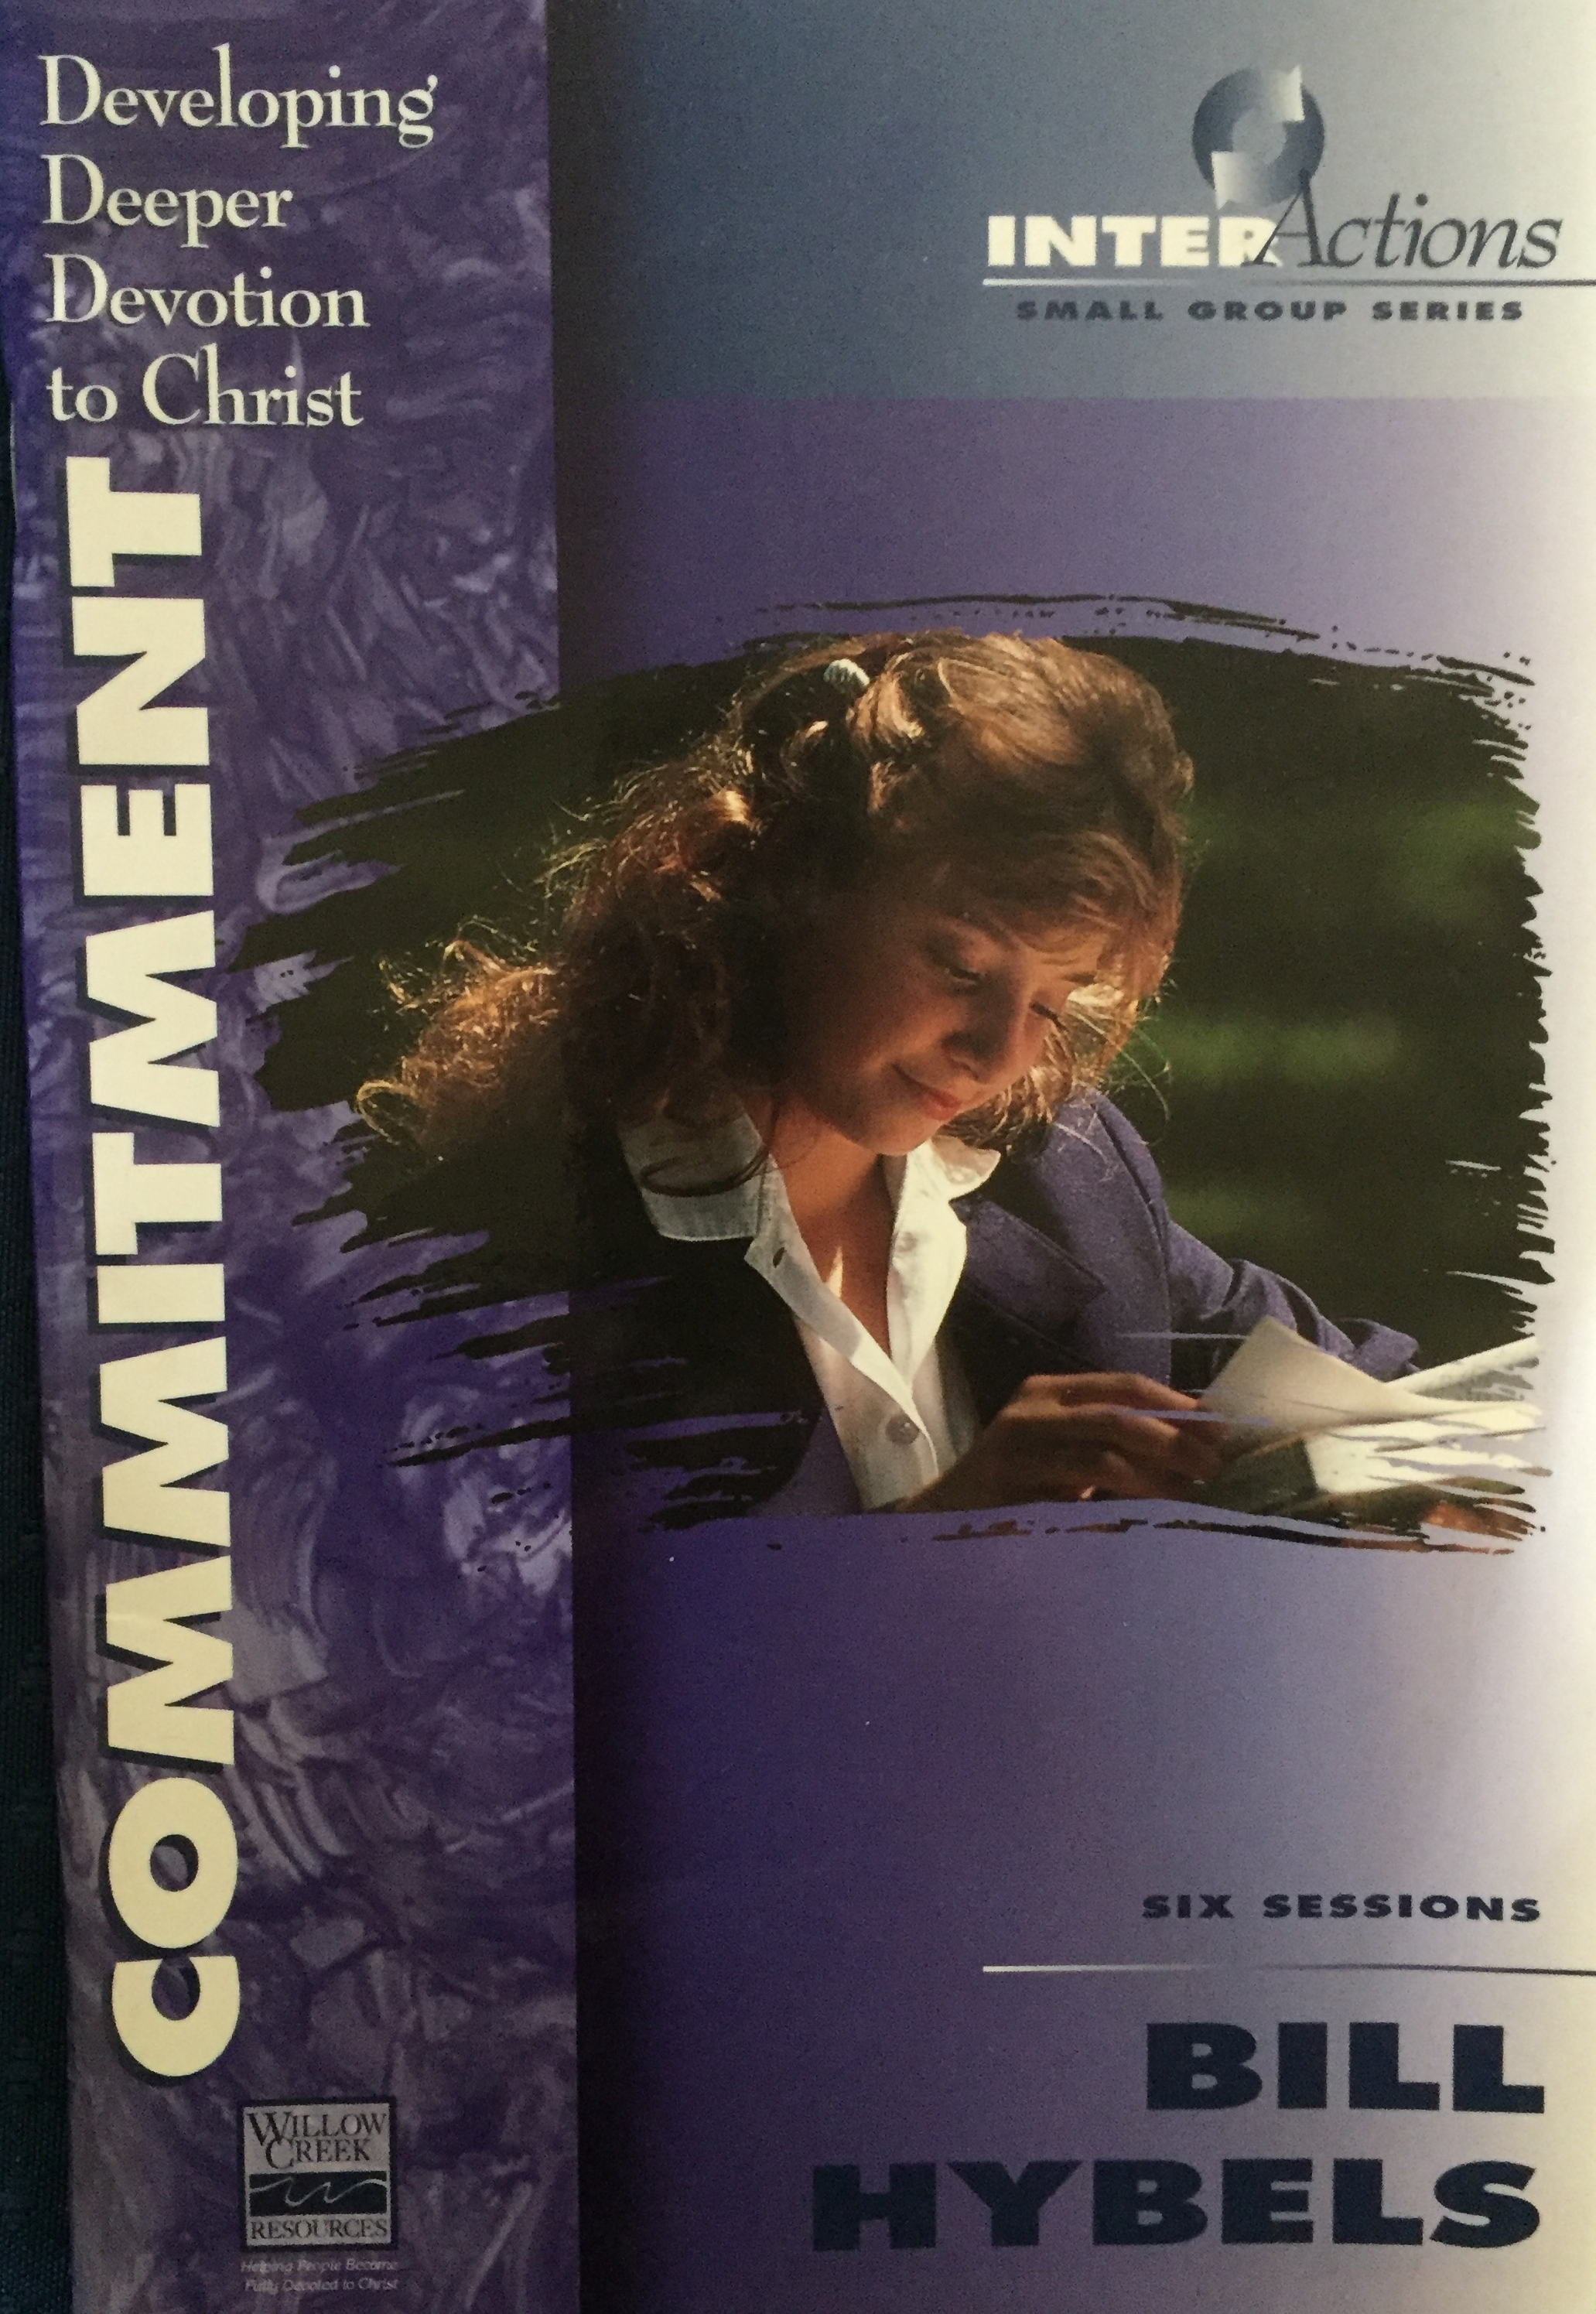 Commitment - developing deeper devotion to Christ